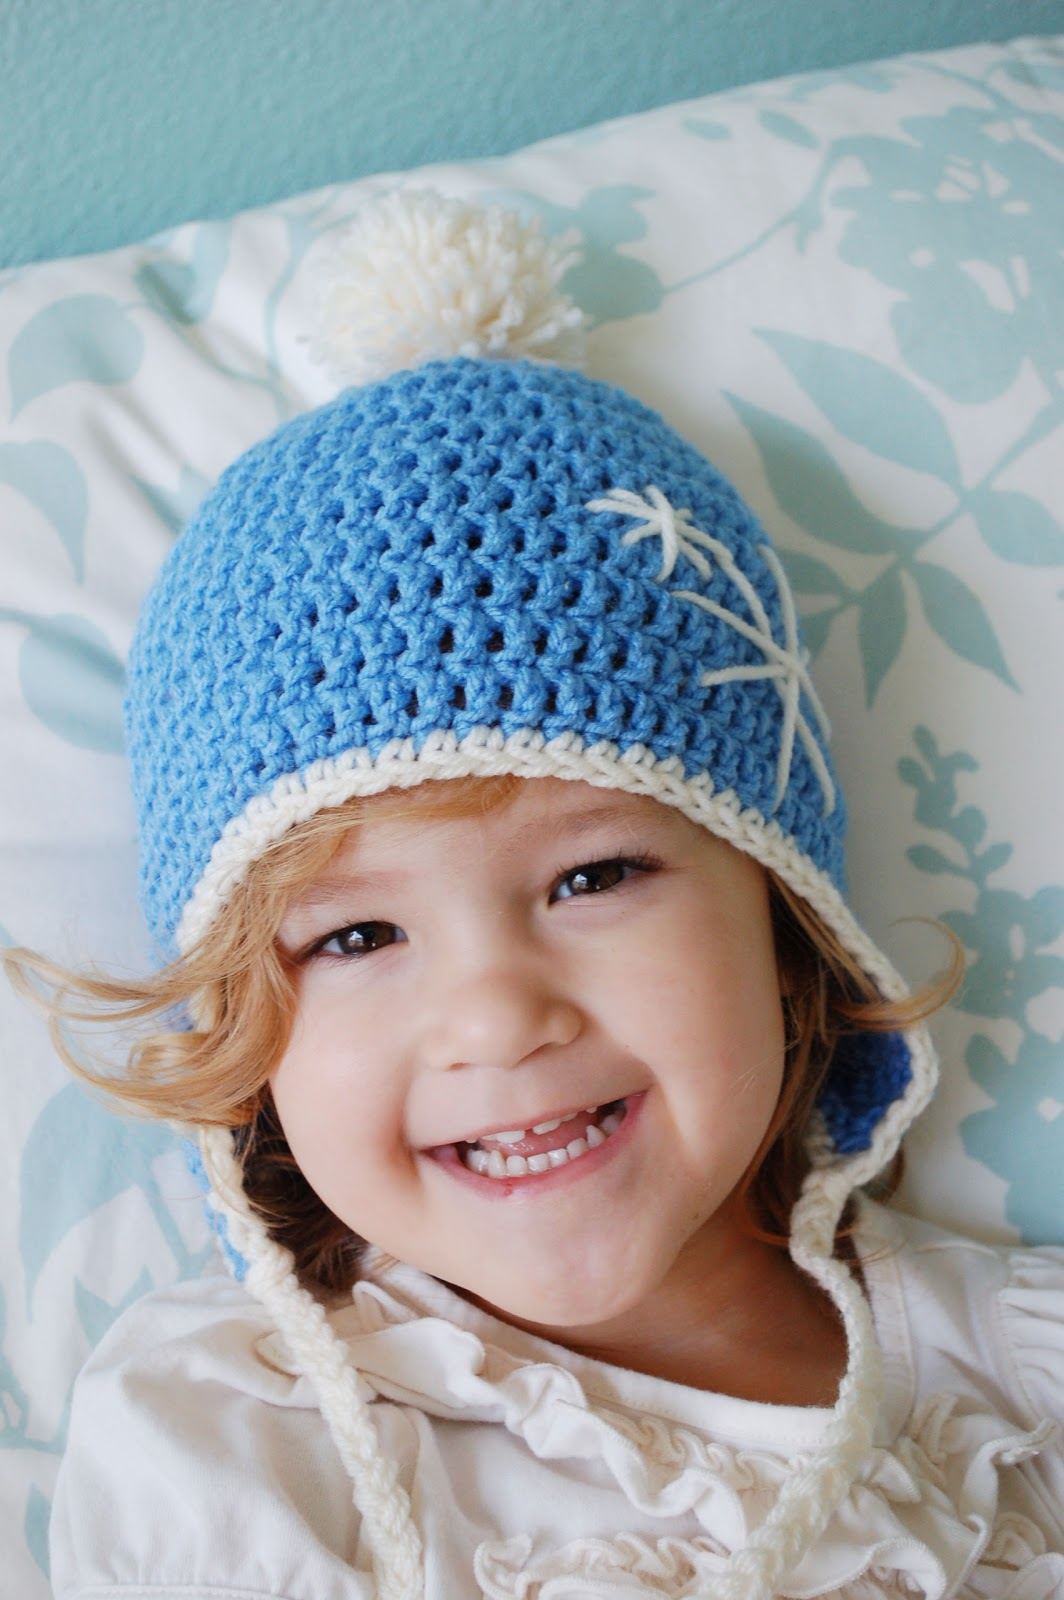 Knitting Pattern For Toddler Hat With Earflaps : Alli Crafts: Free Pattern: Earflap Hat - Toddler